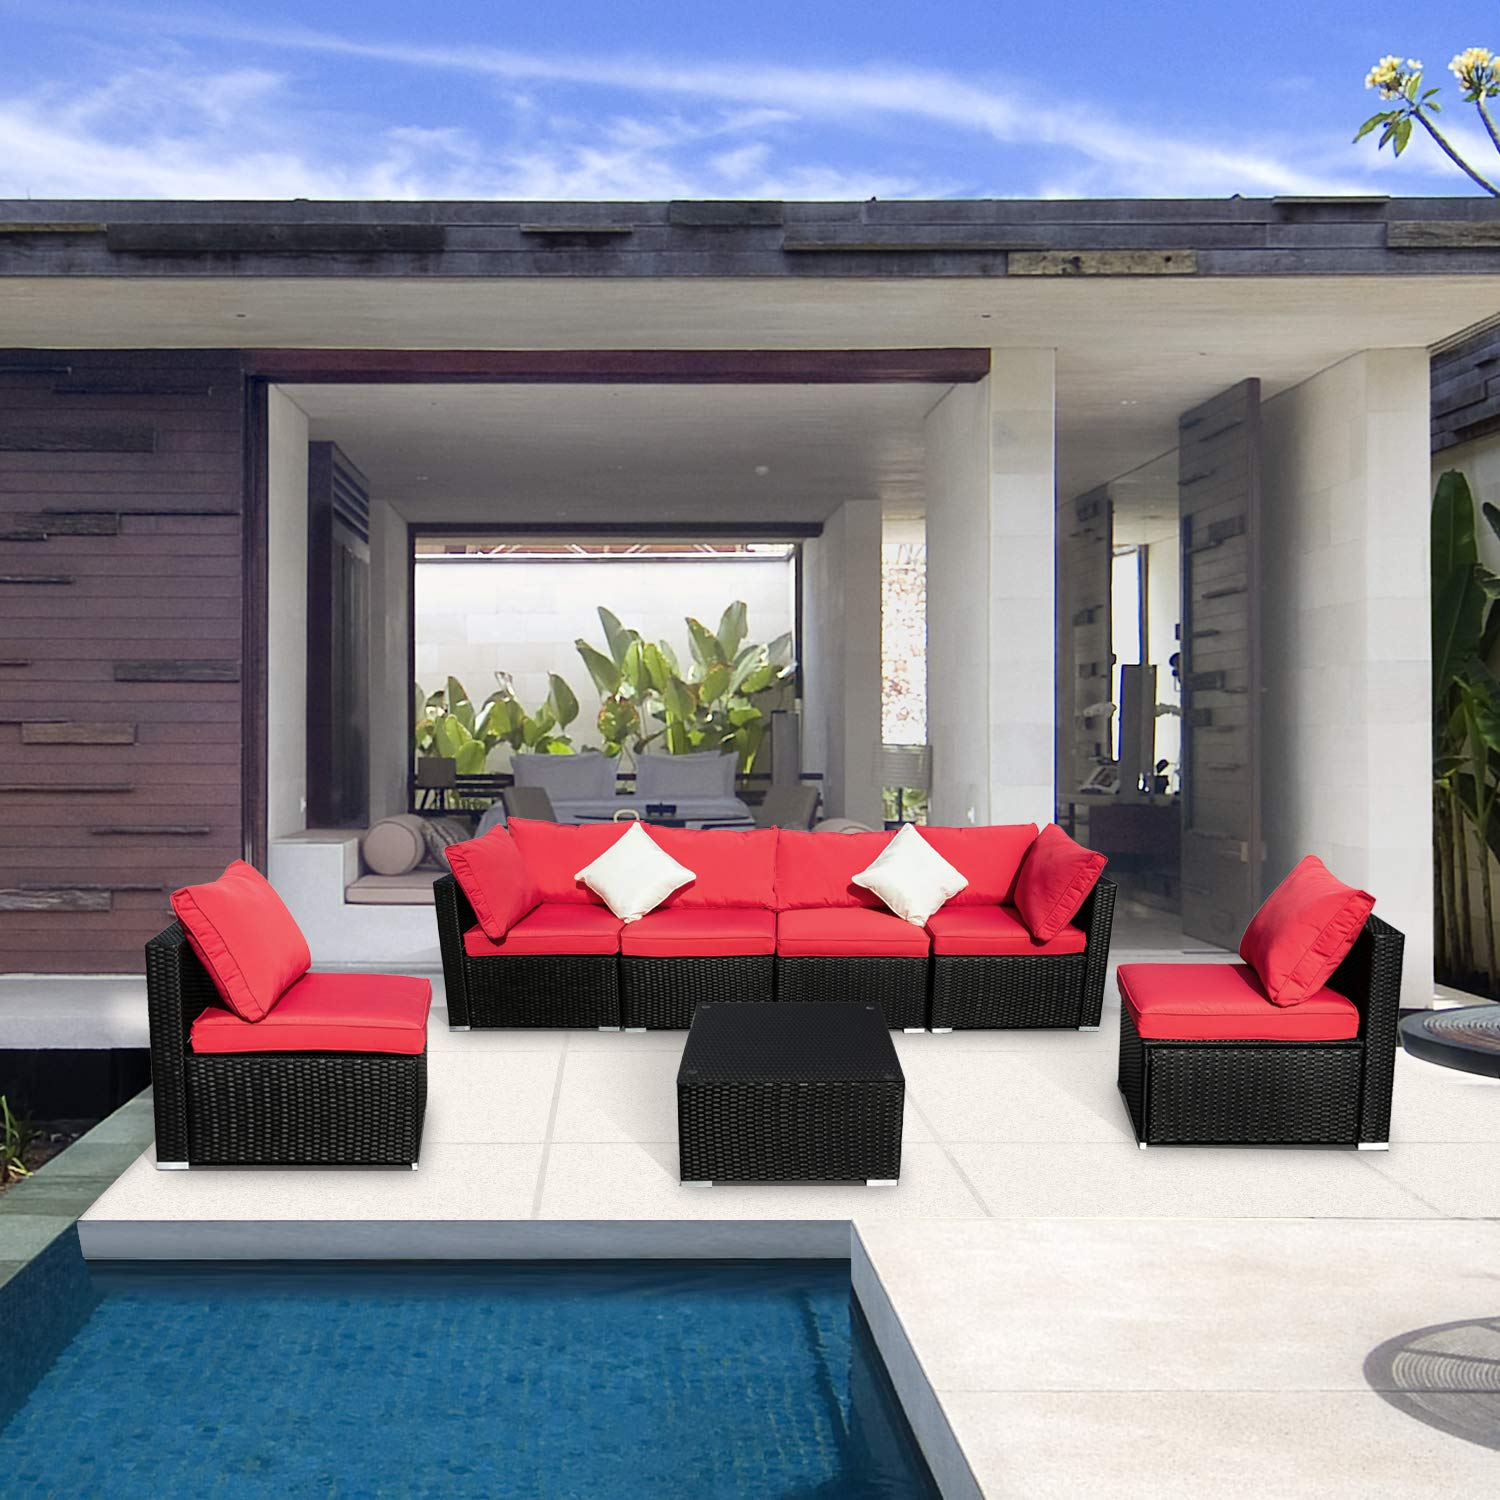 Leisurelife 7 Pcs Outdoor Patio Furniture Set Red, Sectional Sofa with Cushion and Glass Coffee Table, PE, Rattan